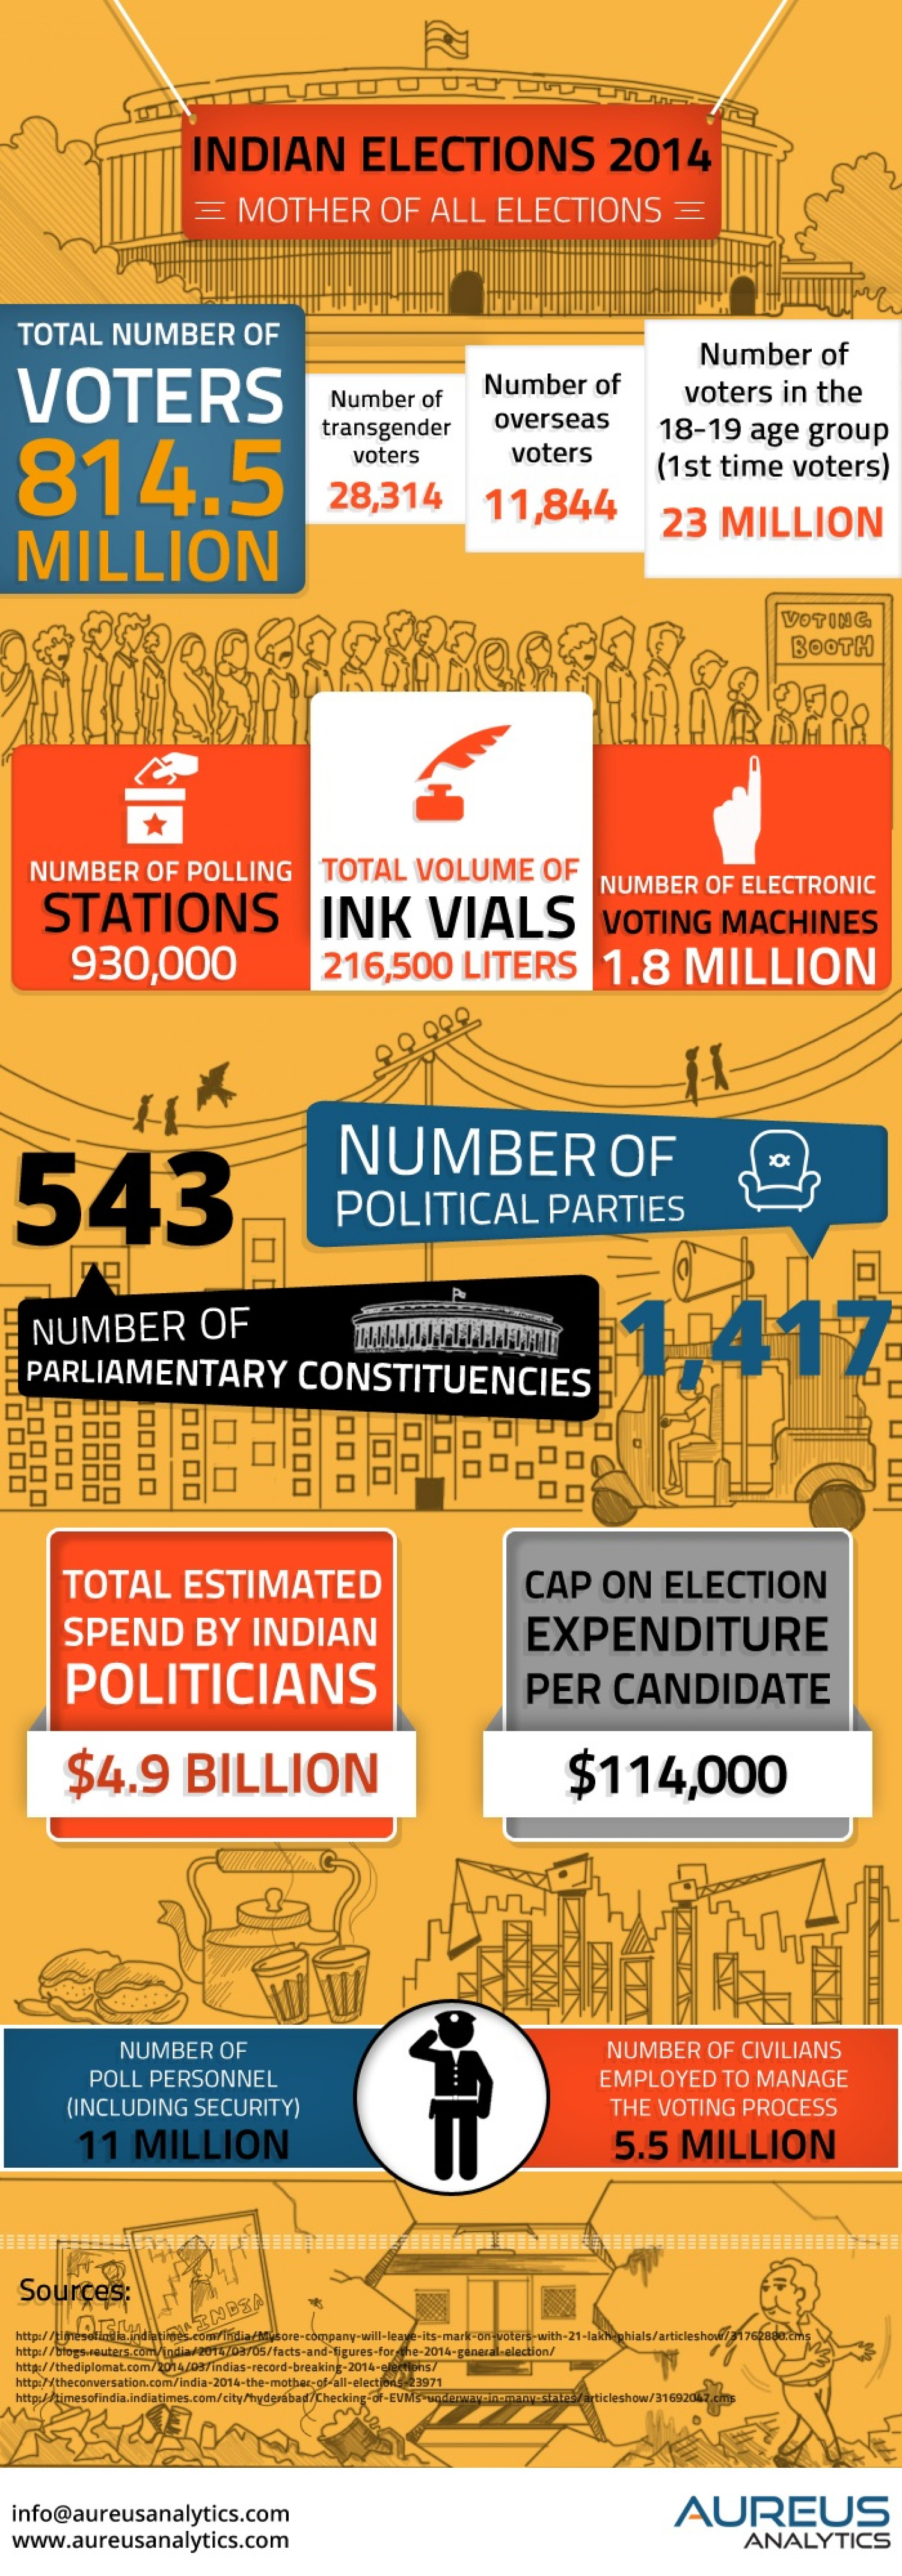 Indian Elections 2014 Infographic